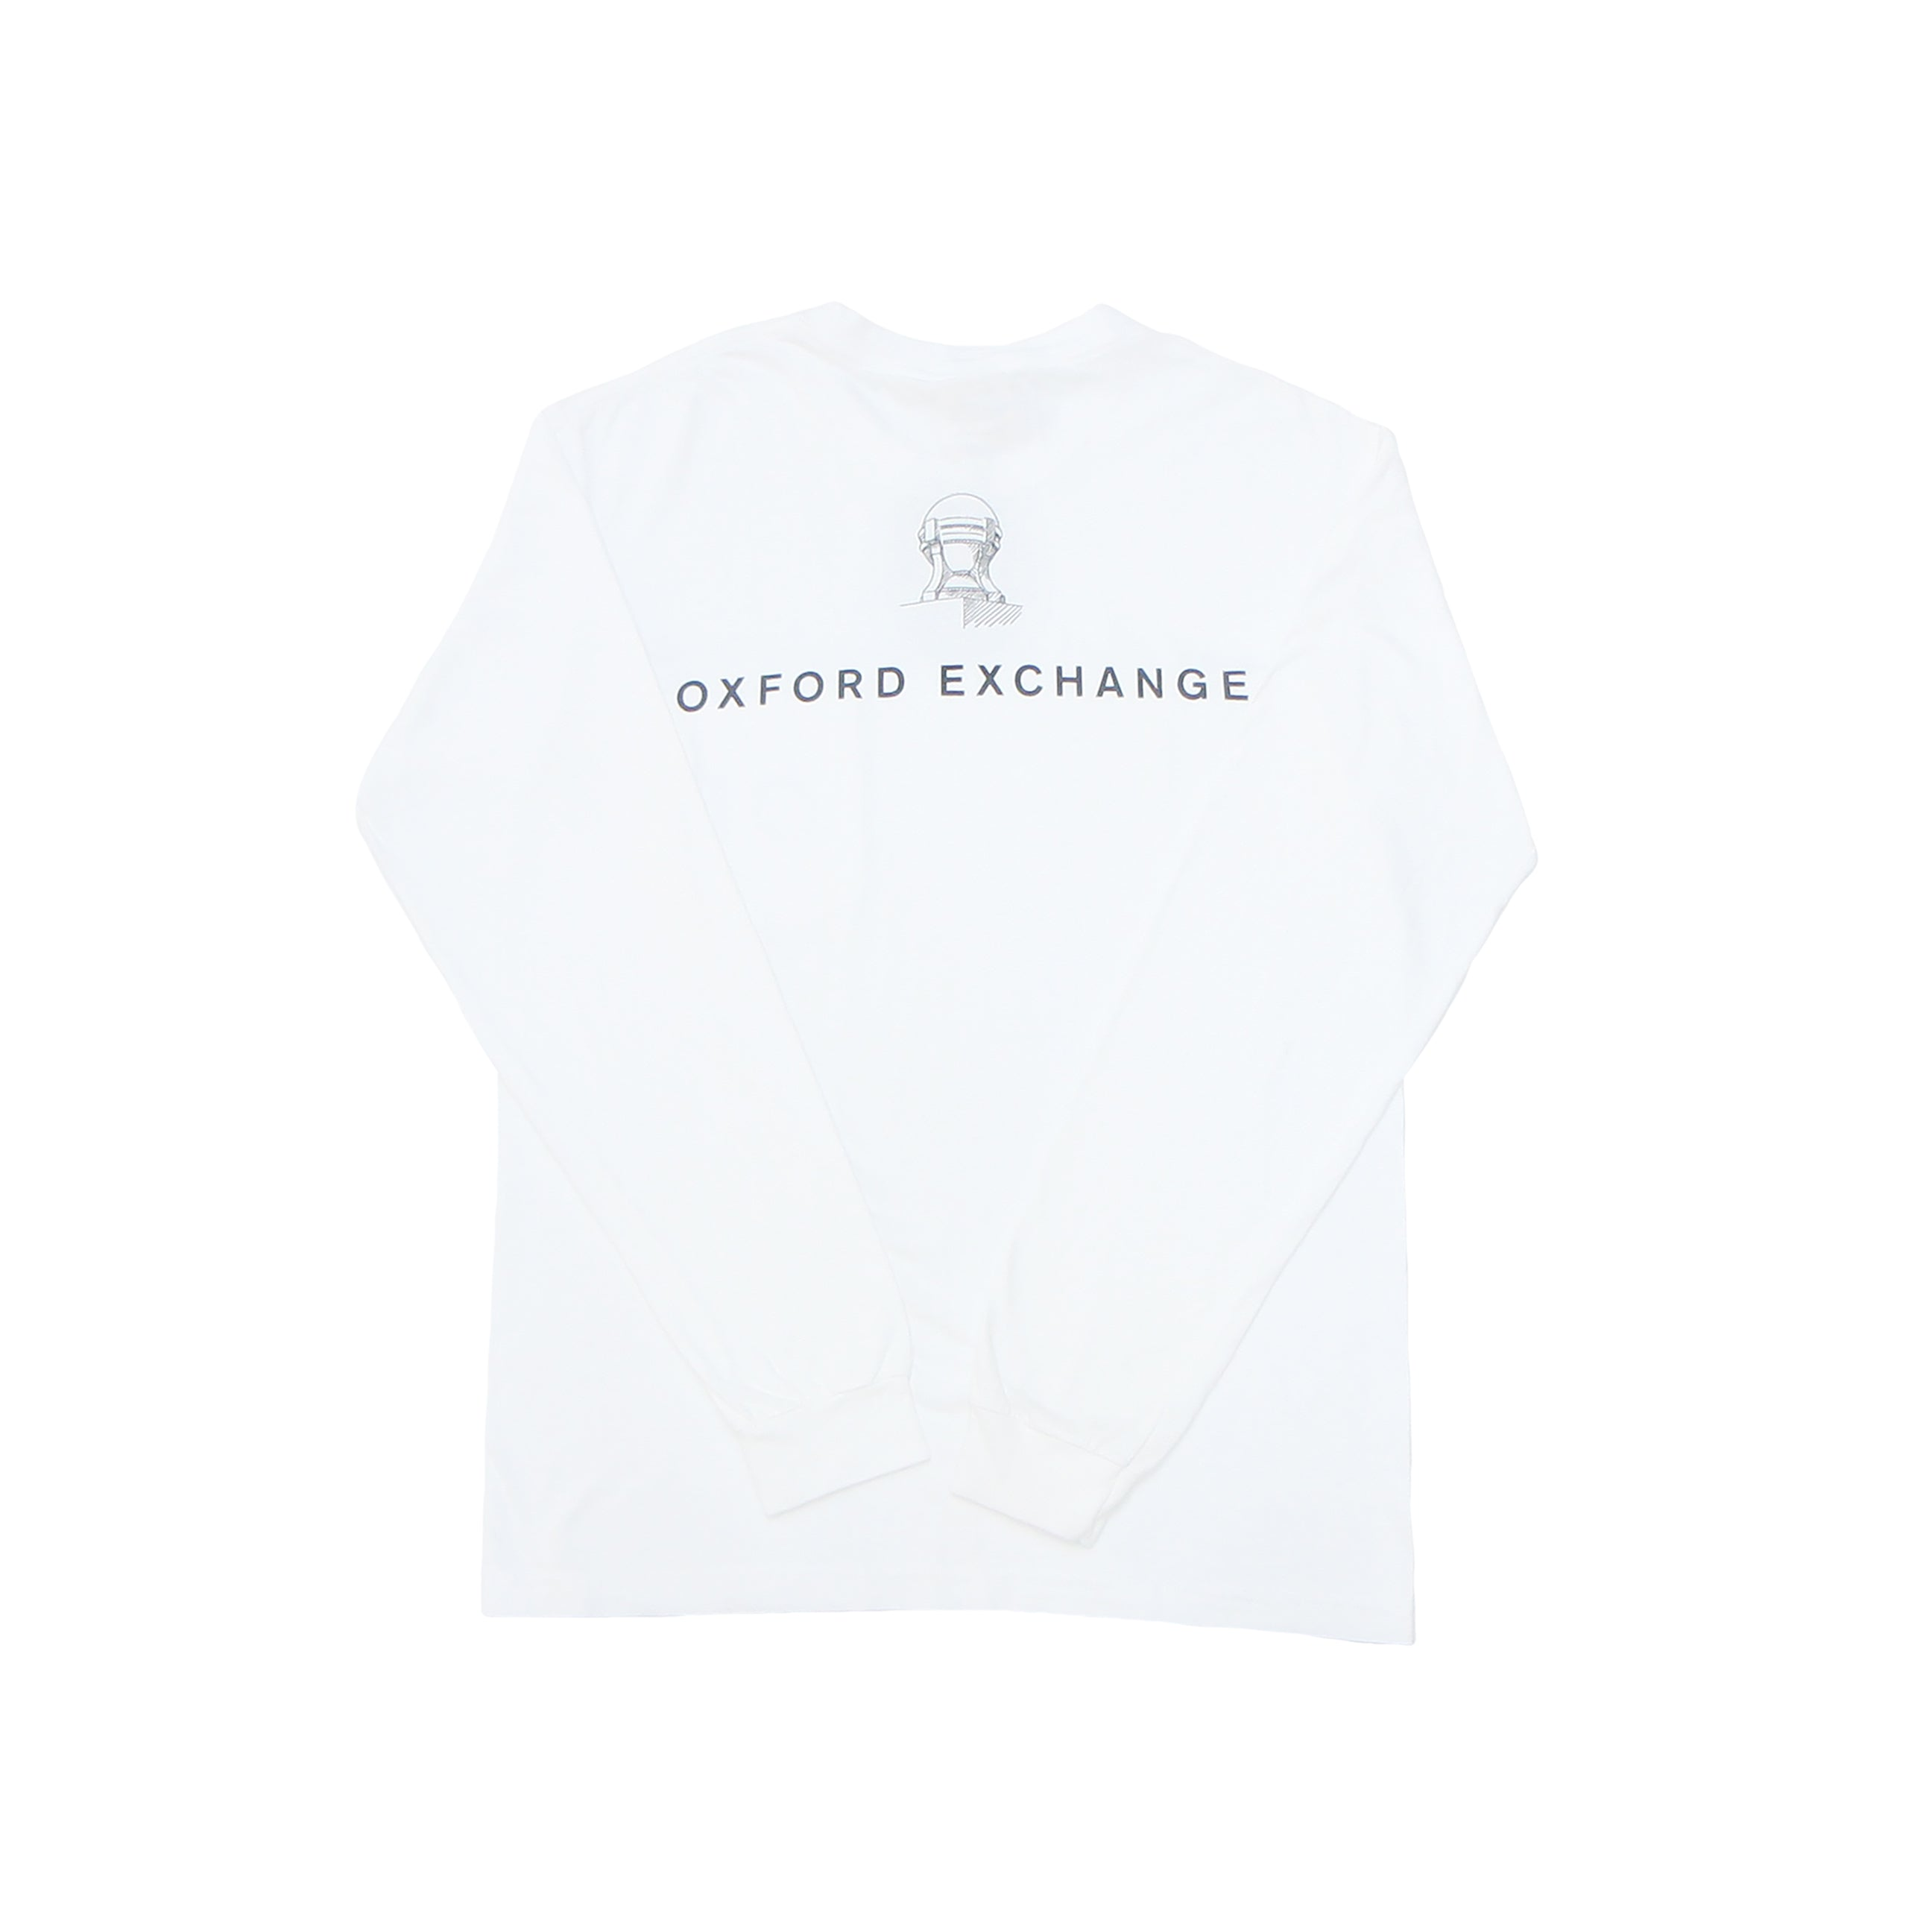 Oxford Exchange Shirt - Long Sleeve